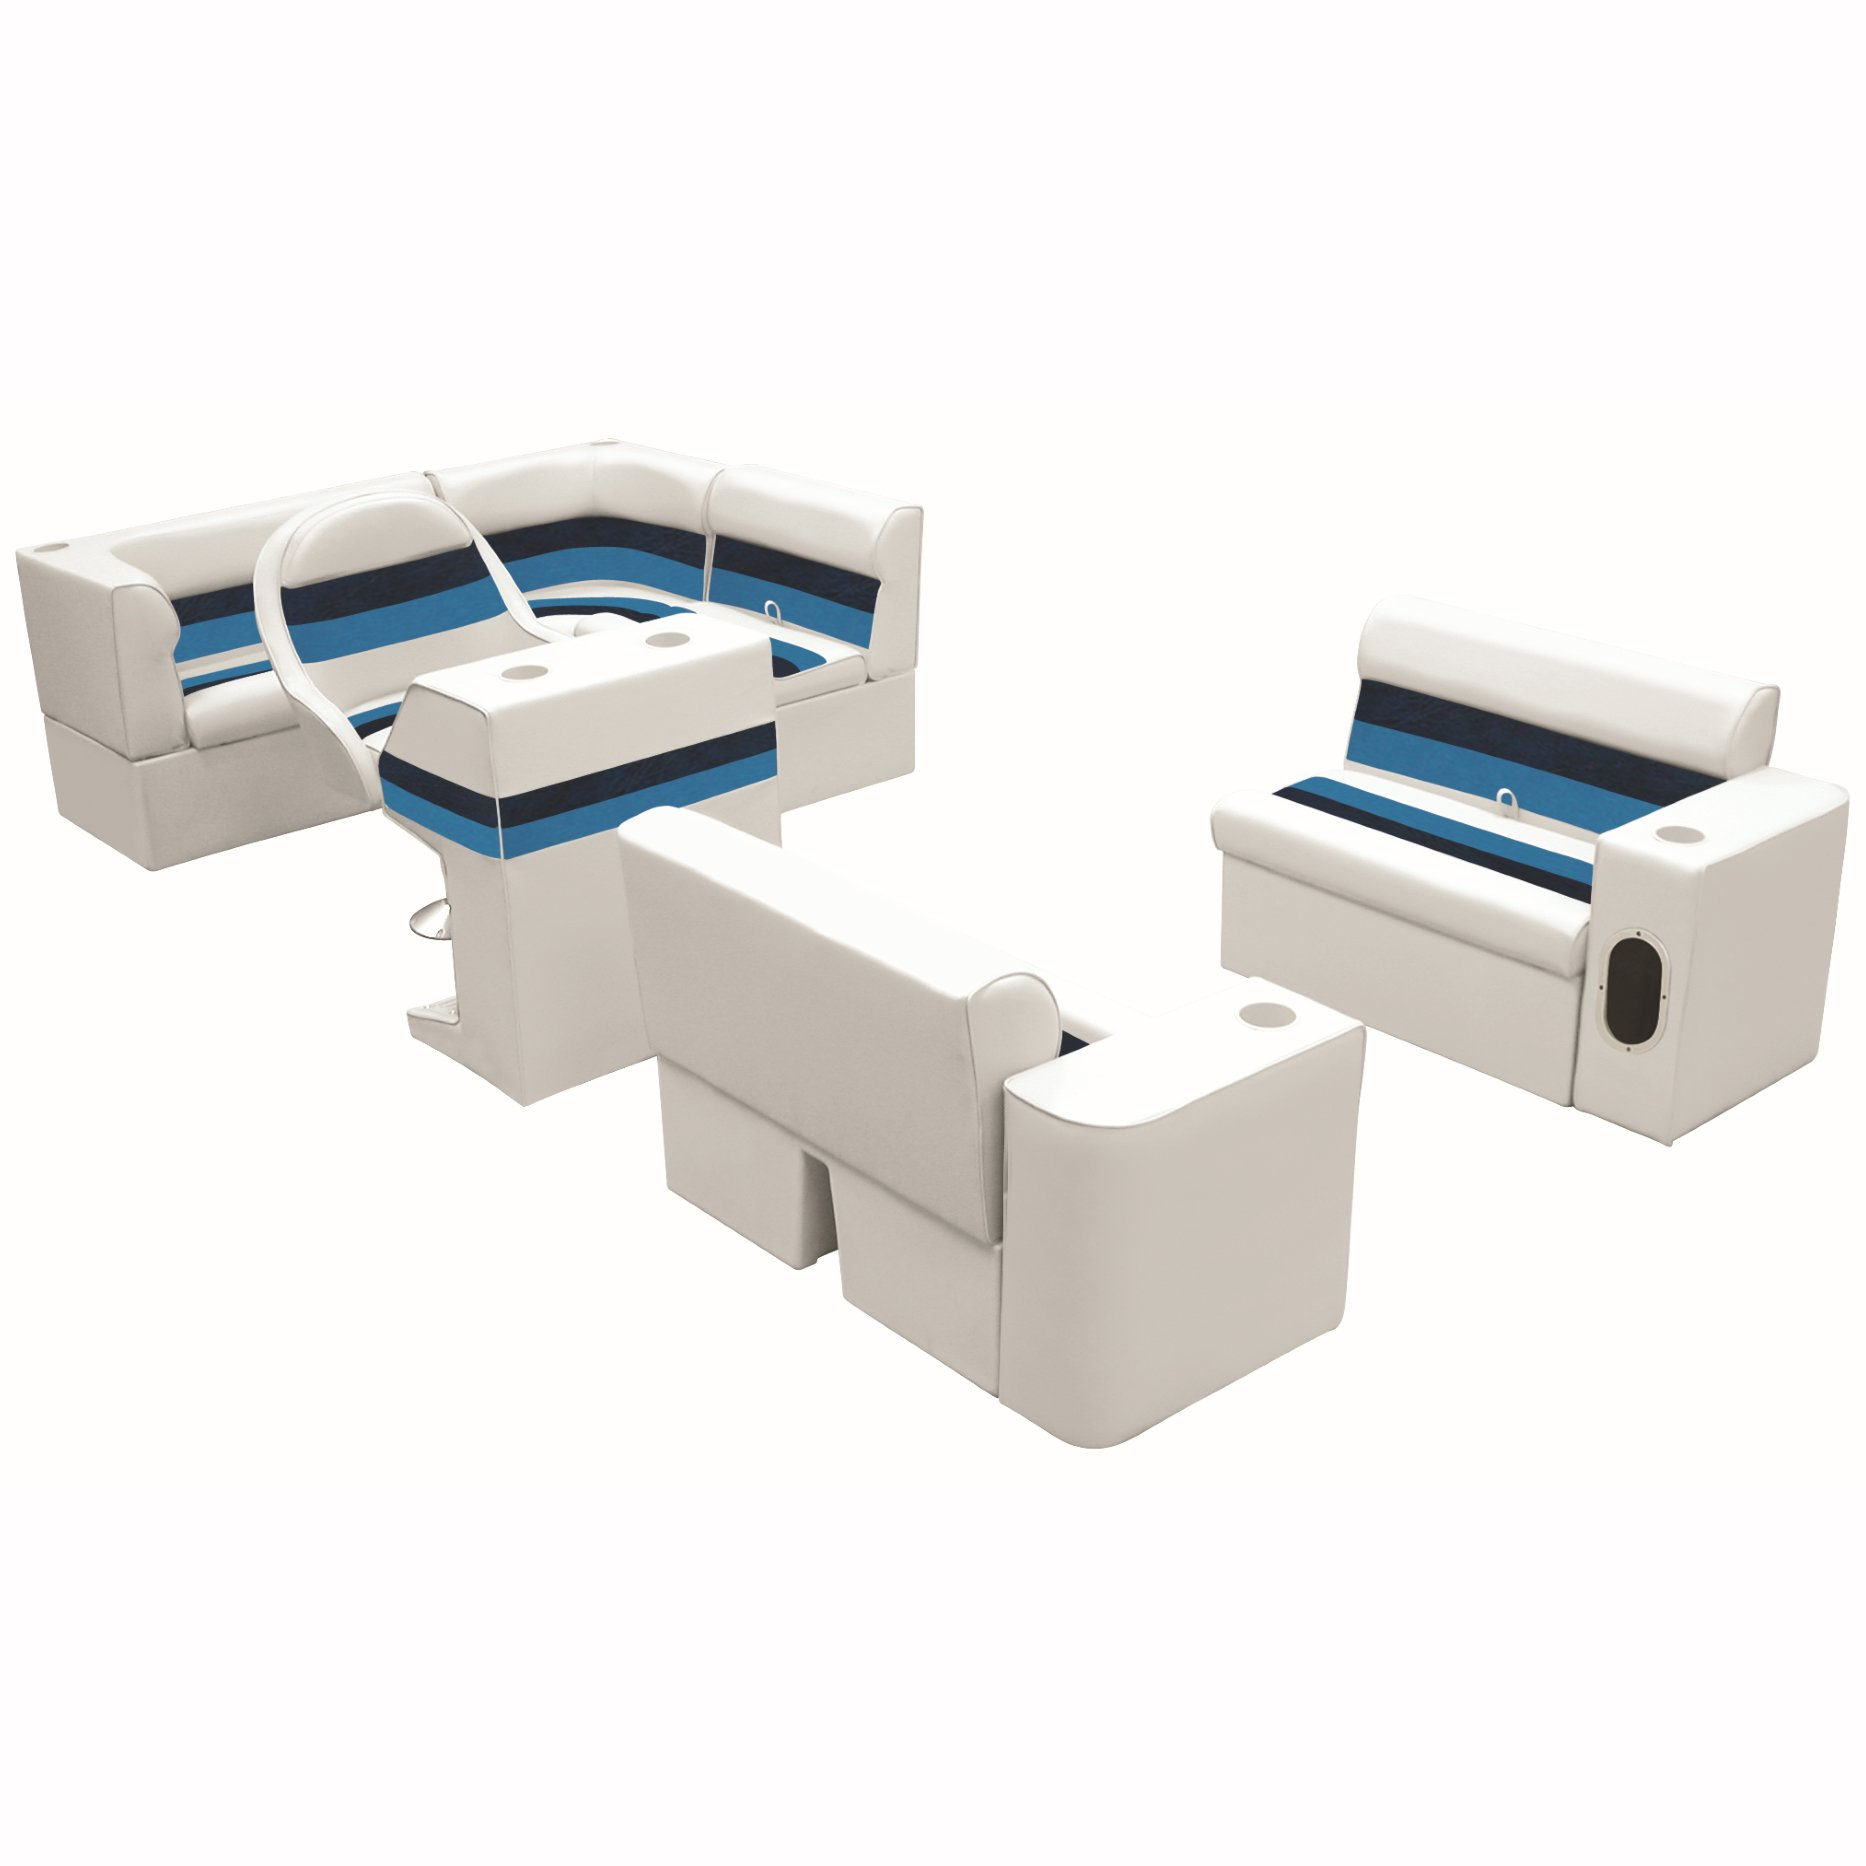 Deluxe Pontoon Furniture w/Classic Base - Complete Boat Package C, White/Nvy/Blu